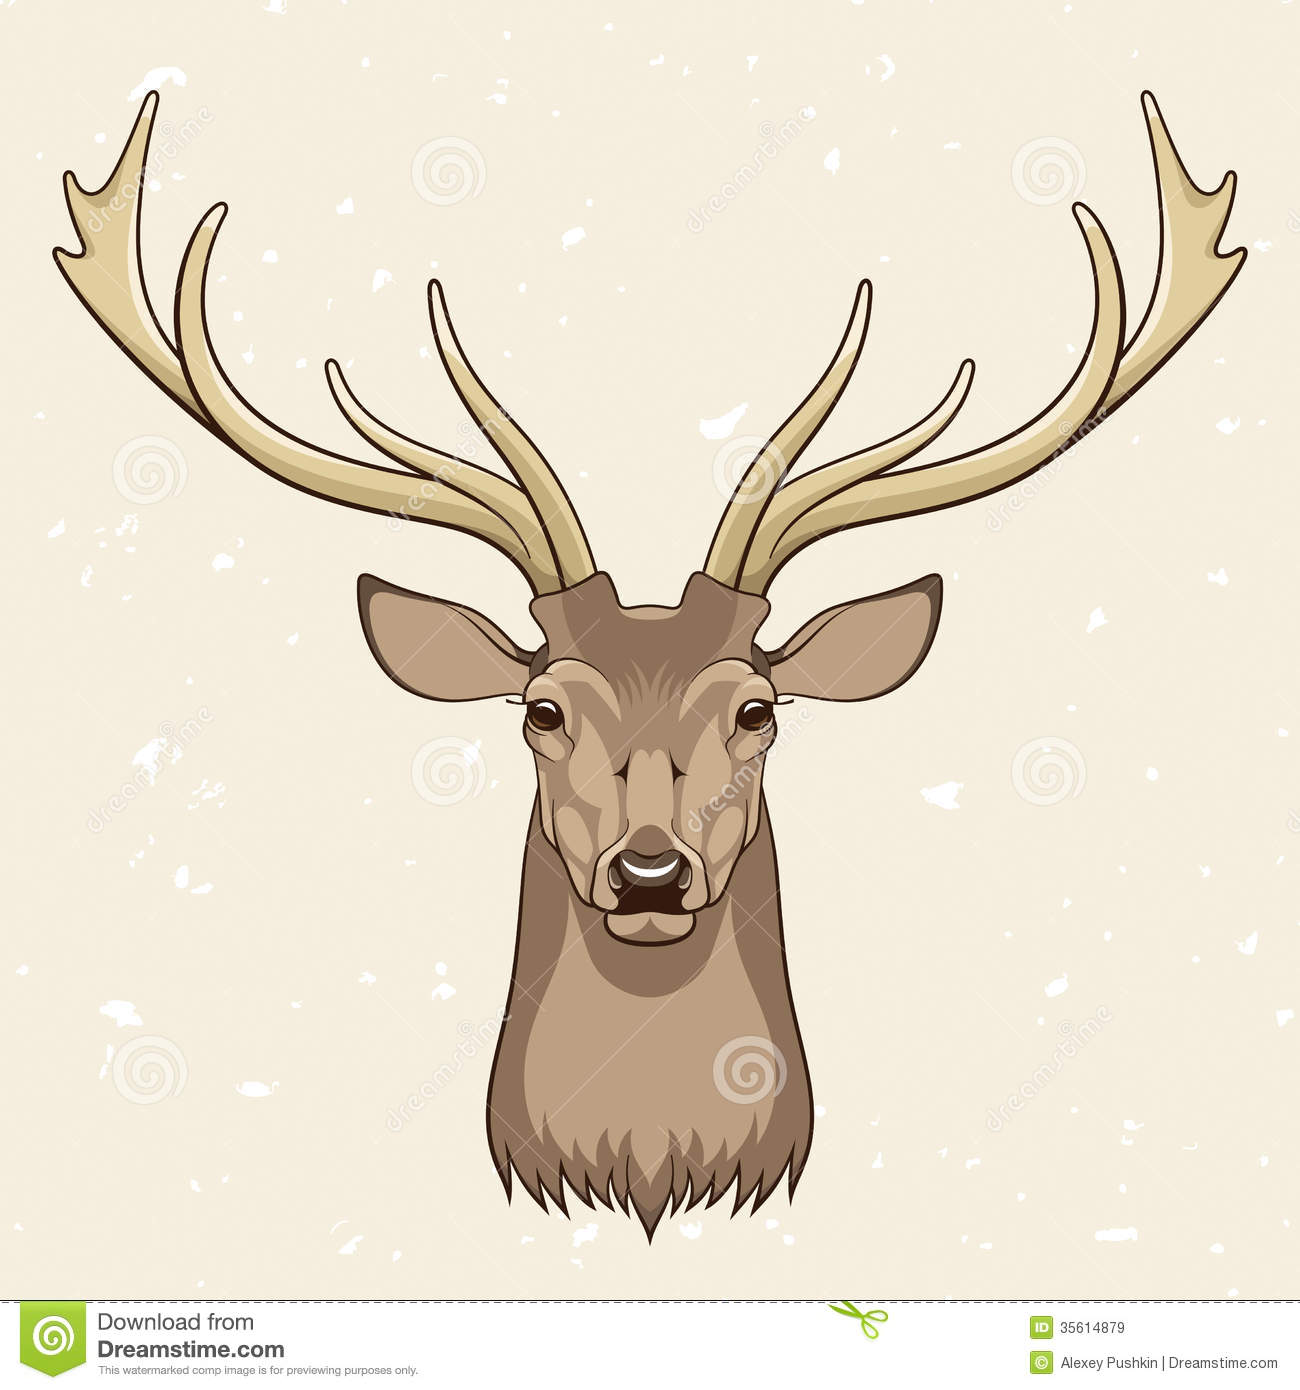 13 Animal Head Vector Images